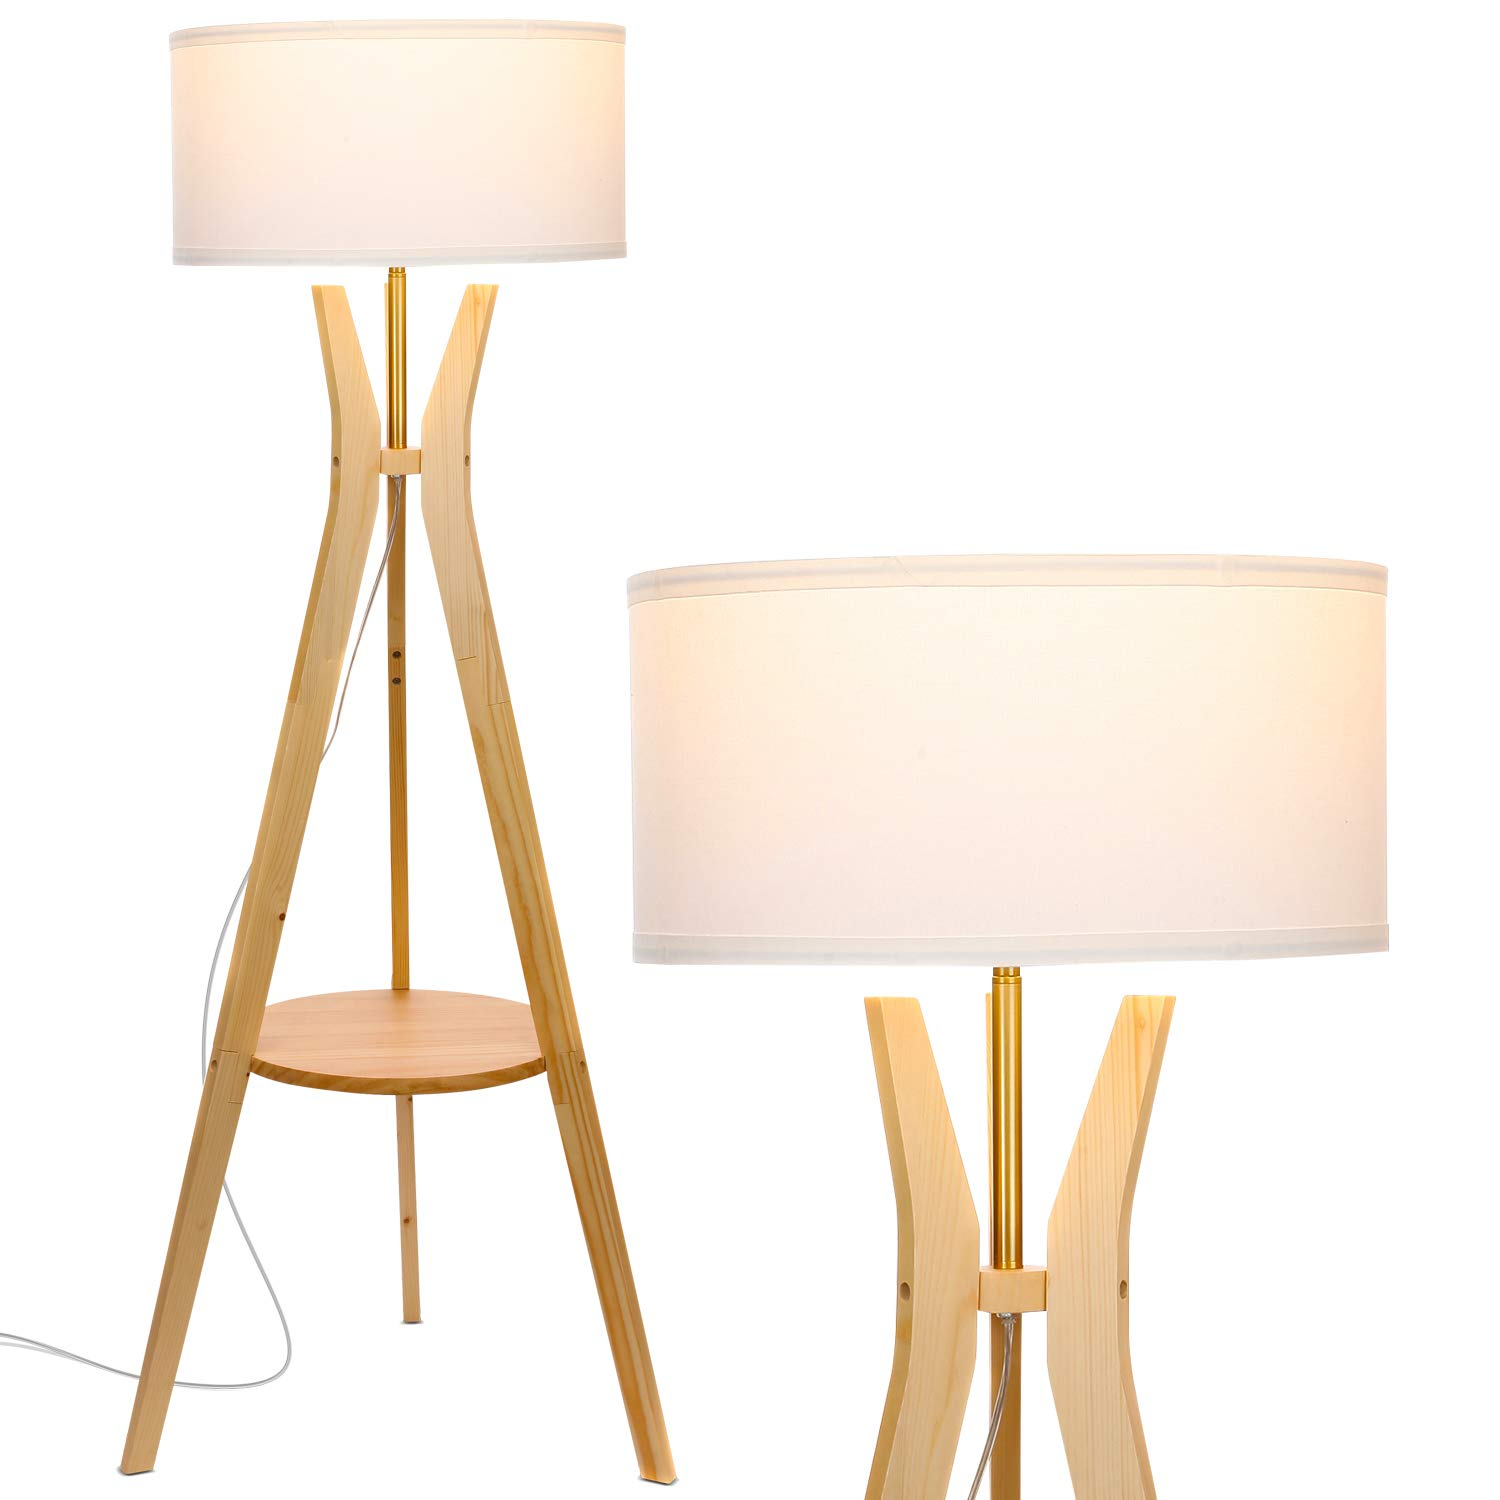 Brightech Charlotte Rustic Shelf LED Floor Lamp – Tripod Standing Light for Mid Century Modern Living Rooms Bedrooms – Contemporary, Tall Office Lamp – Drum Shade – Includes LED Bulb